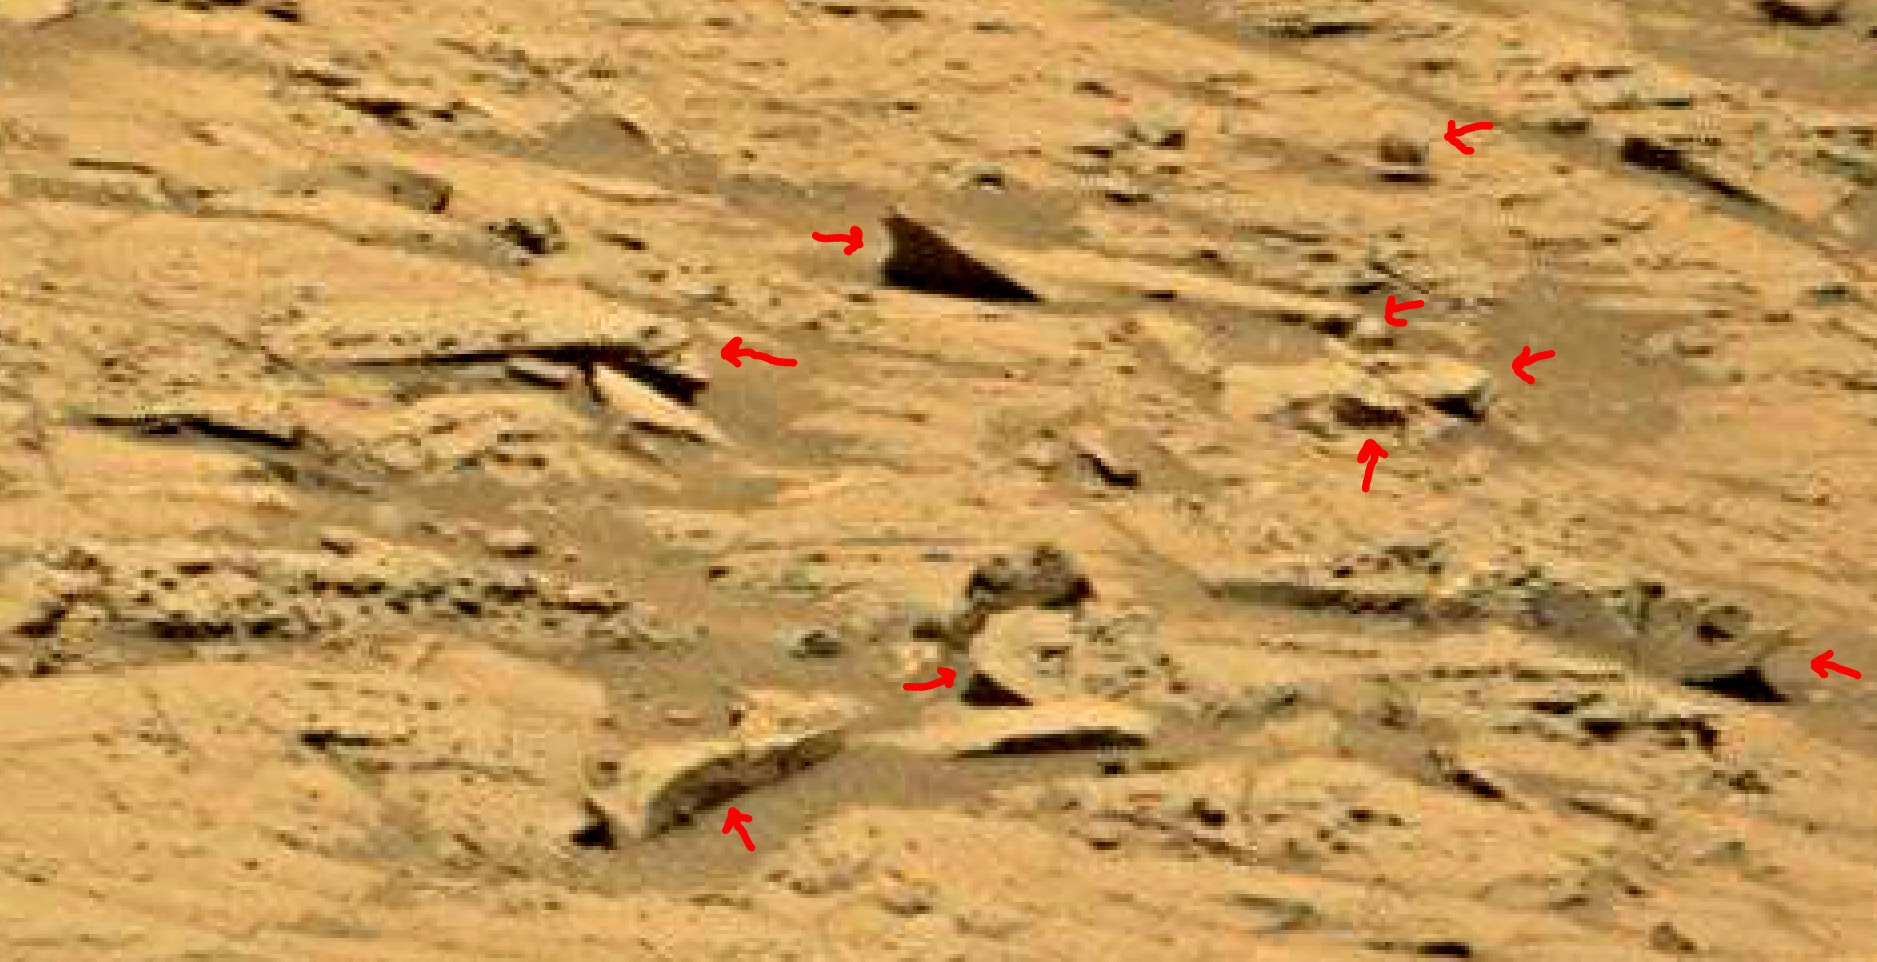 mars sol 1353 anomaly-artifacts 59 was life on mars